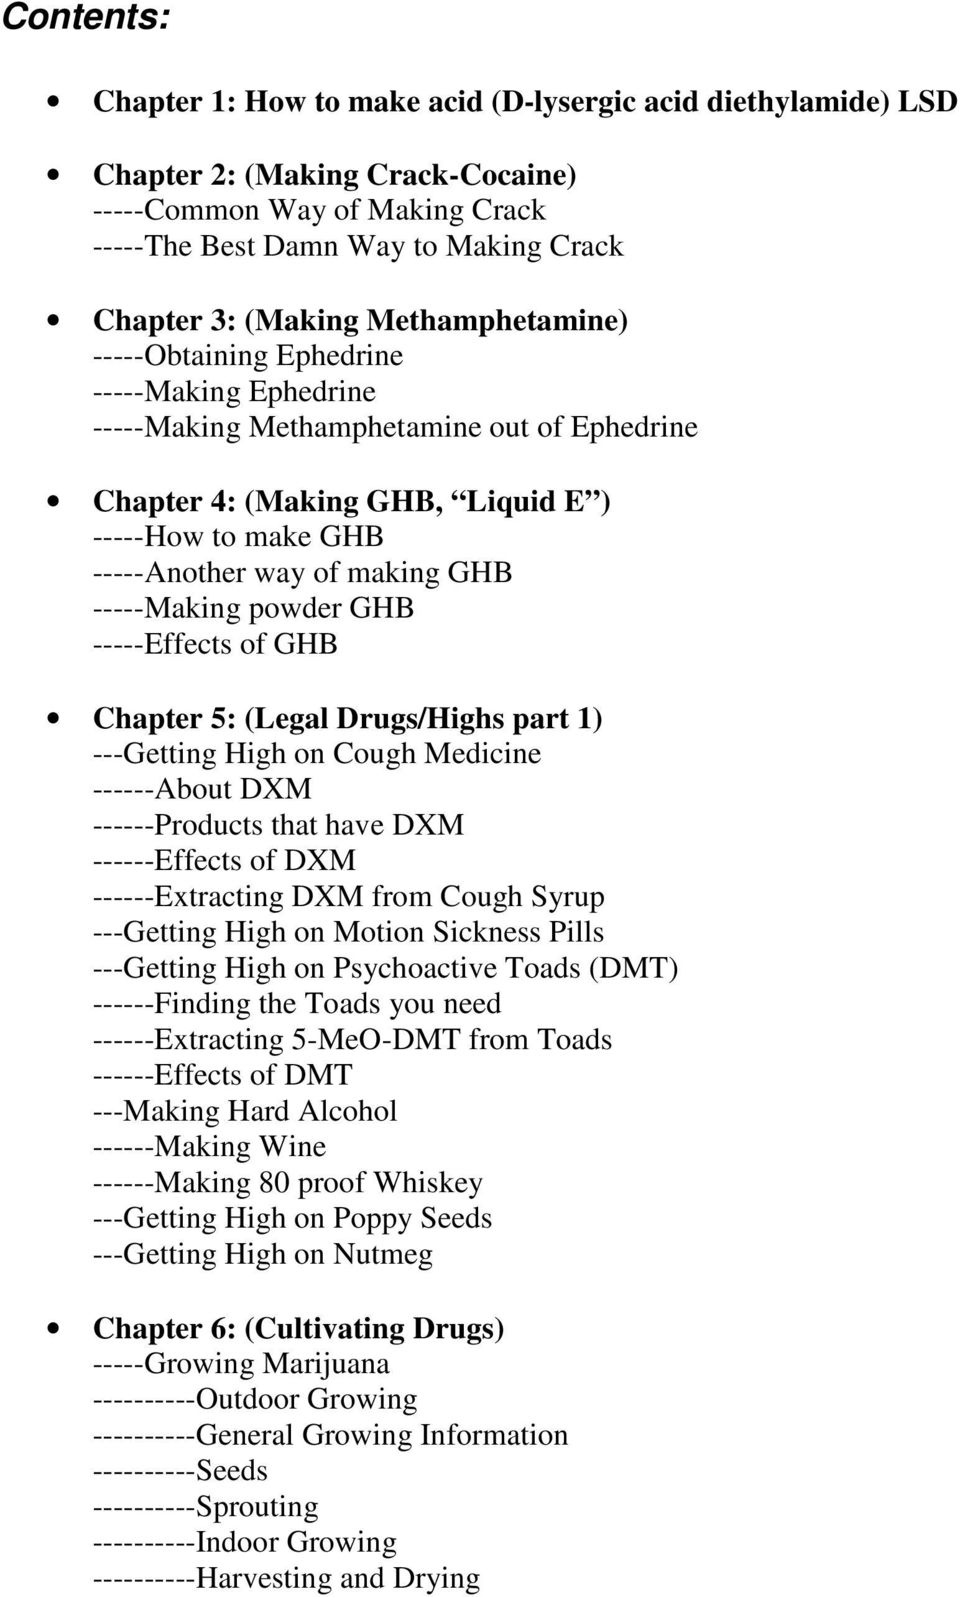 The Complete Recreational Drugs Handbook By Anonymous Pdf